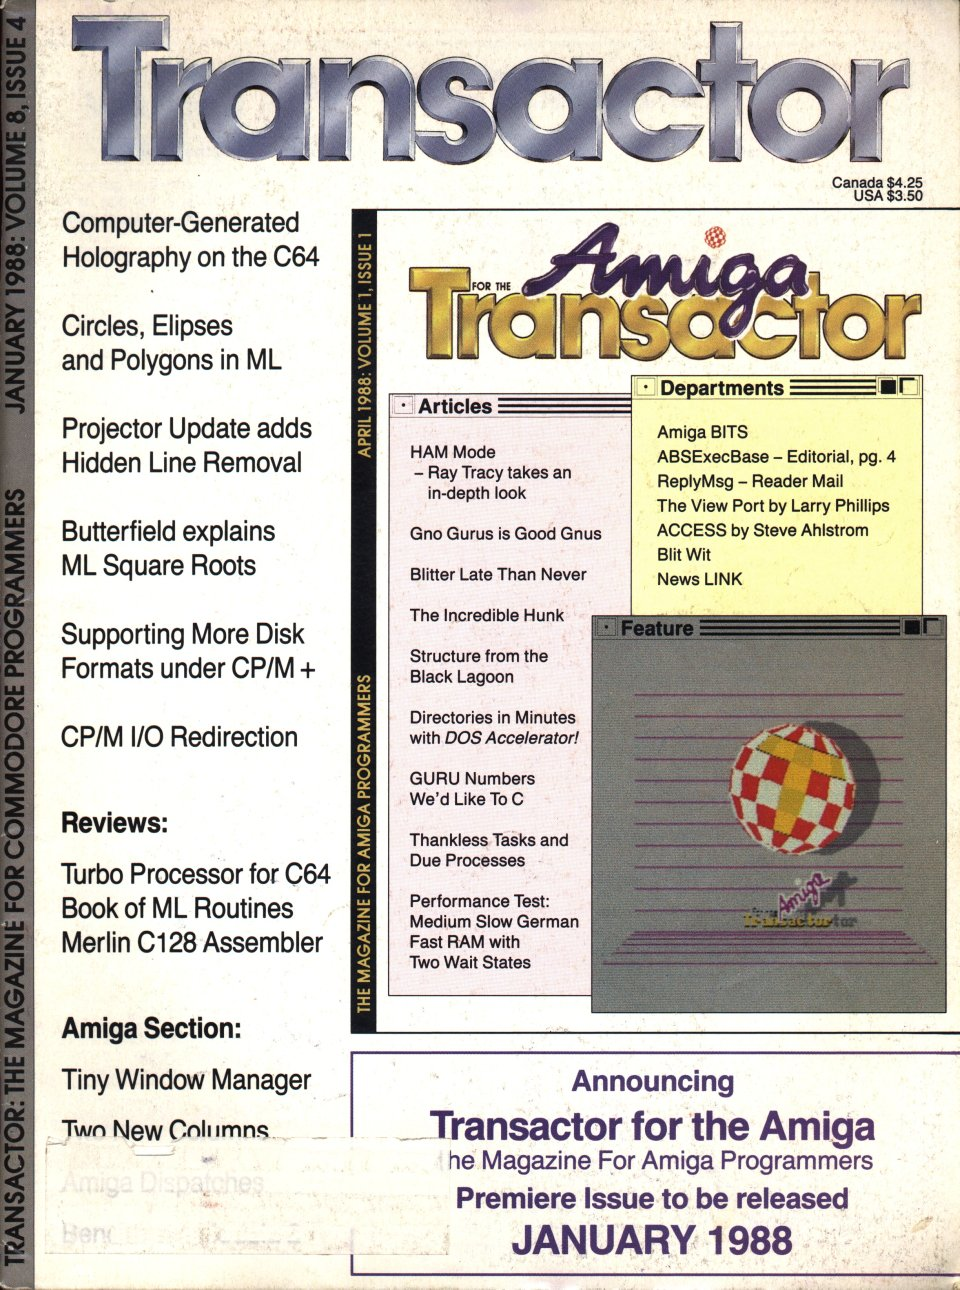 [Cover Page of The Transactor Volume 8, Issue 4]